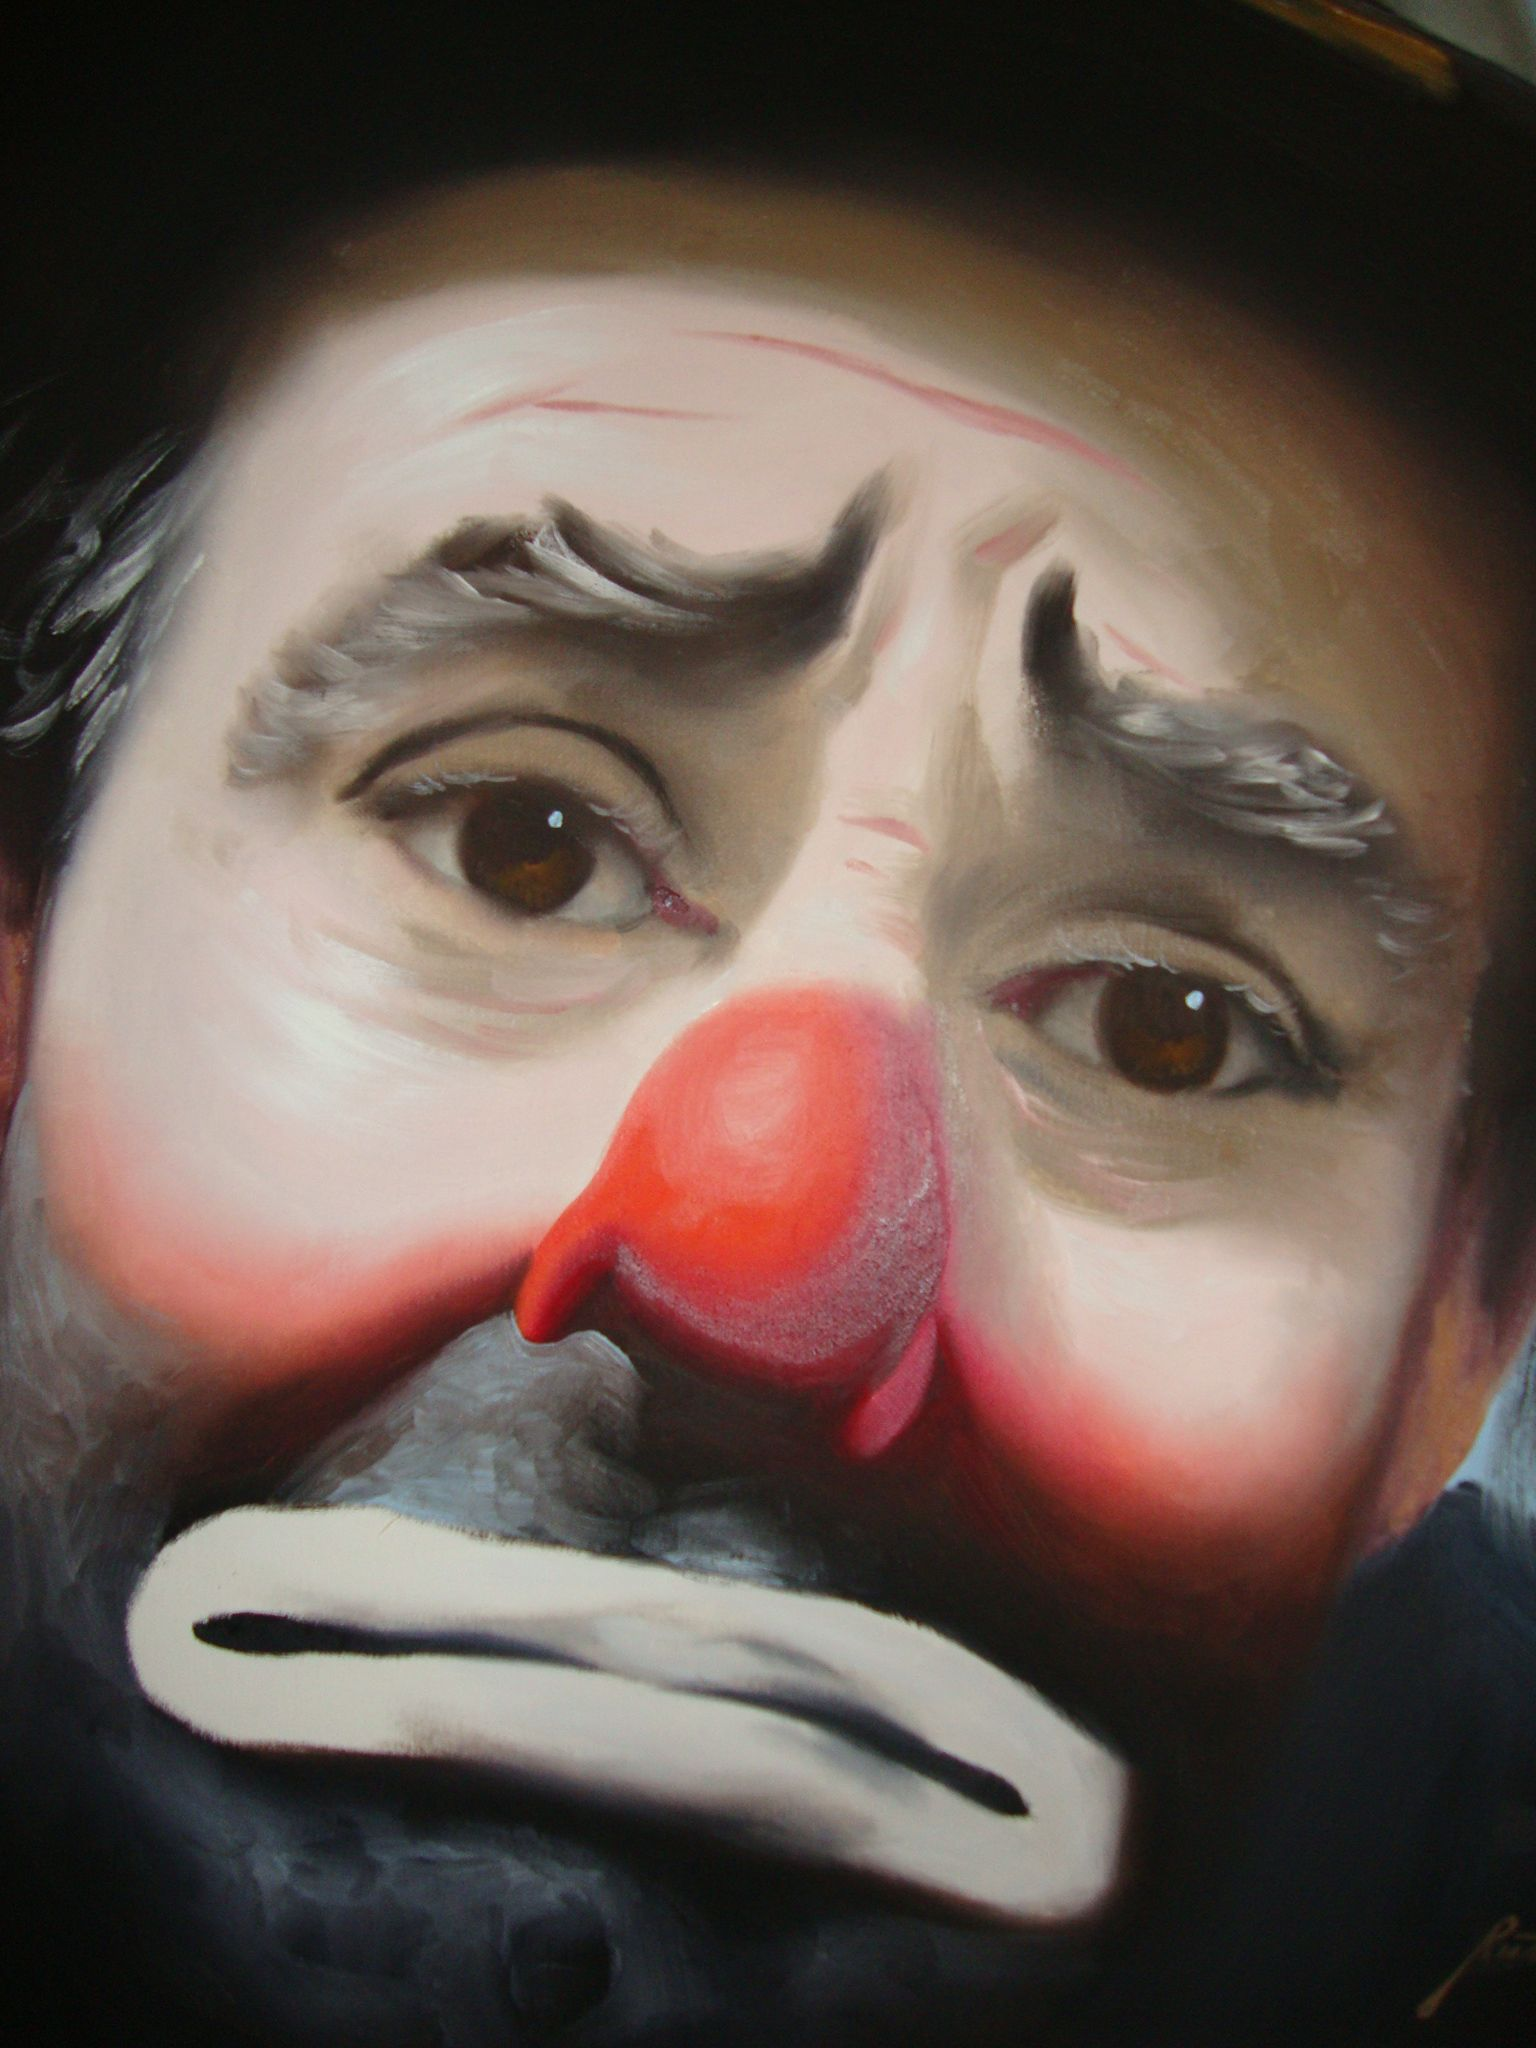 SAD PAINTINGS | This is my sad clown painting. It hangs in my basement and offends ...